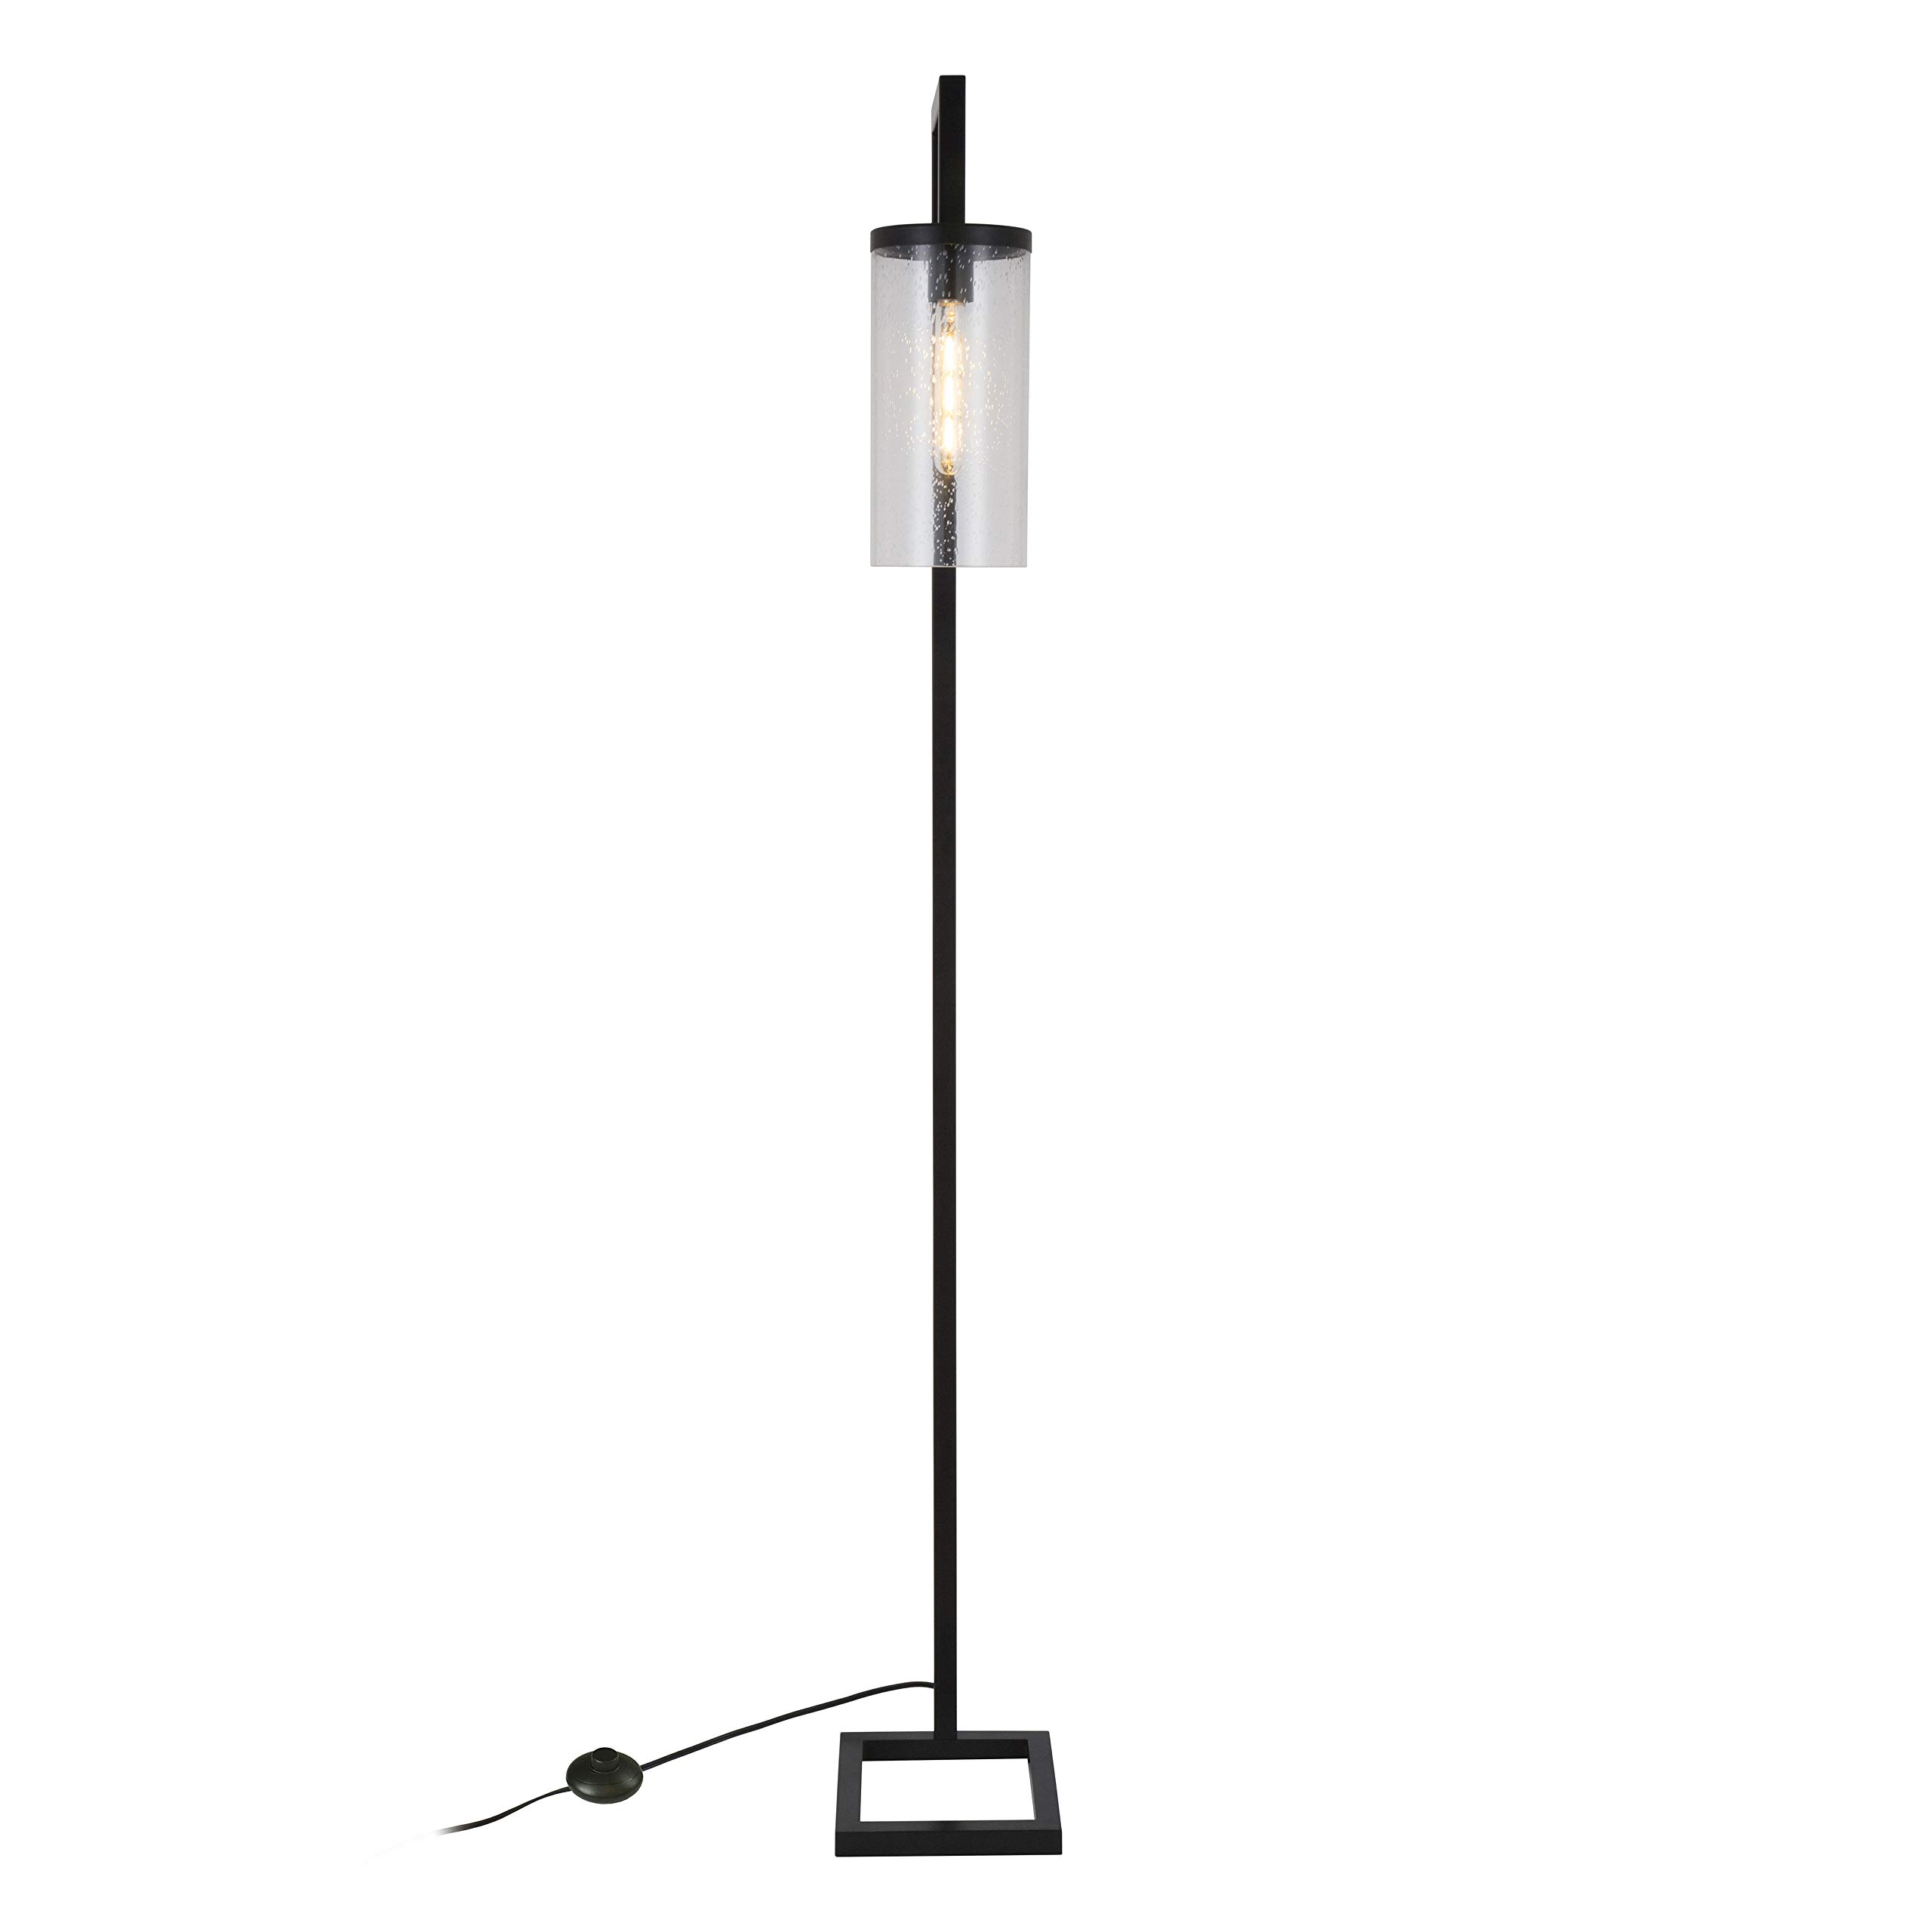 Henn&Hart FL0014 Modern Farmhouse seeded Task Lamp, One Size Black by Henn&Hart (Image #8)